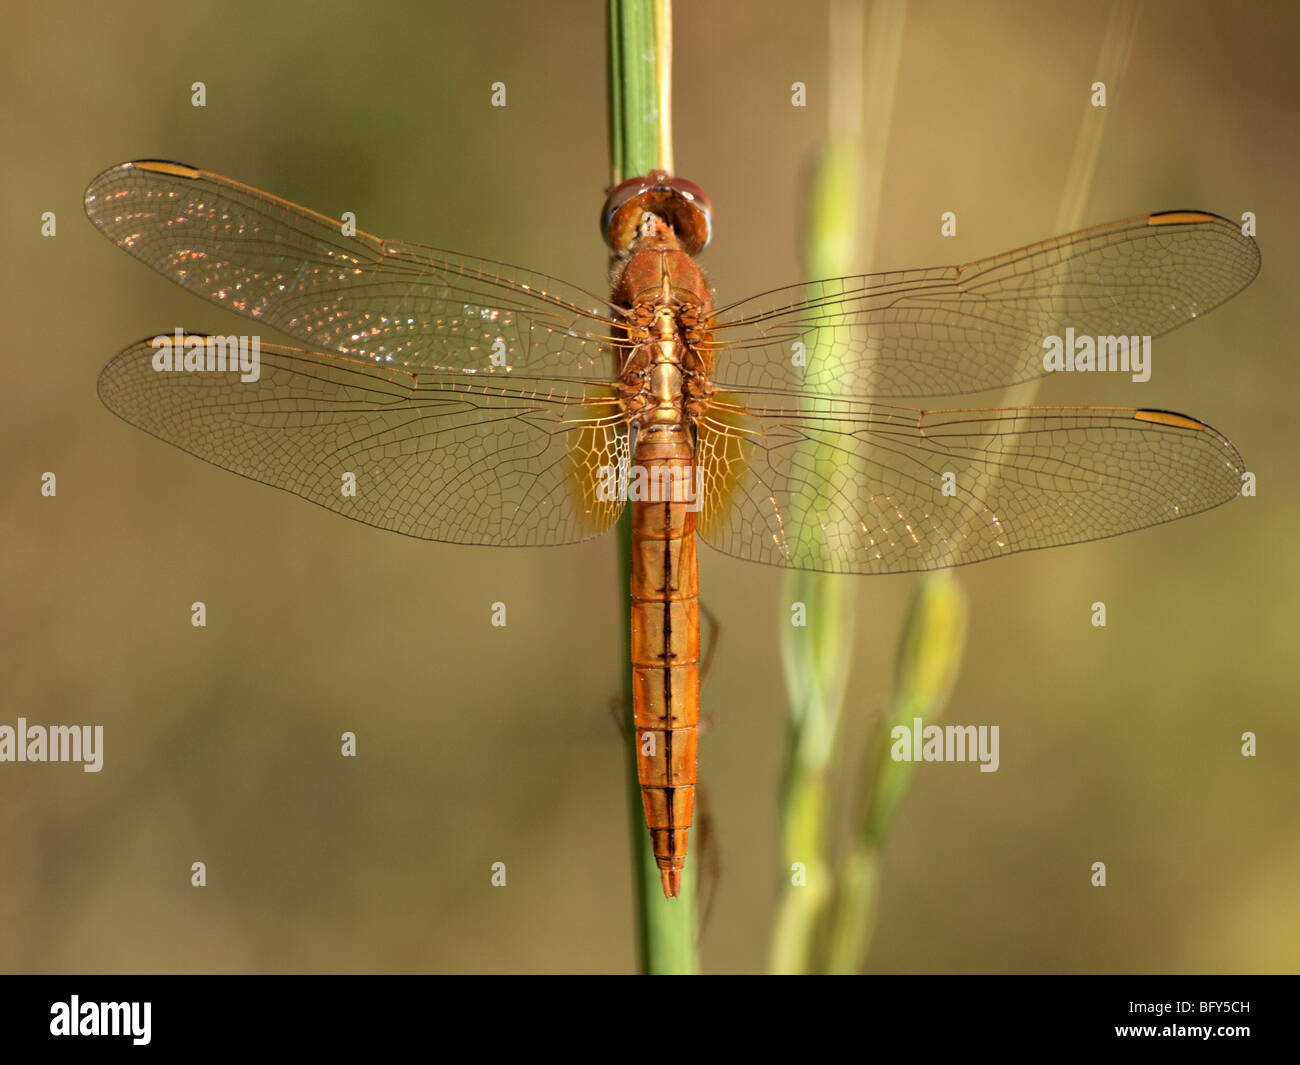 wings of golden dragonfly at Kanha, India perched on upright stem of reed glitters and gleams in bright sunshine - Stock Image